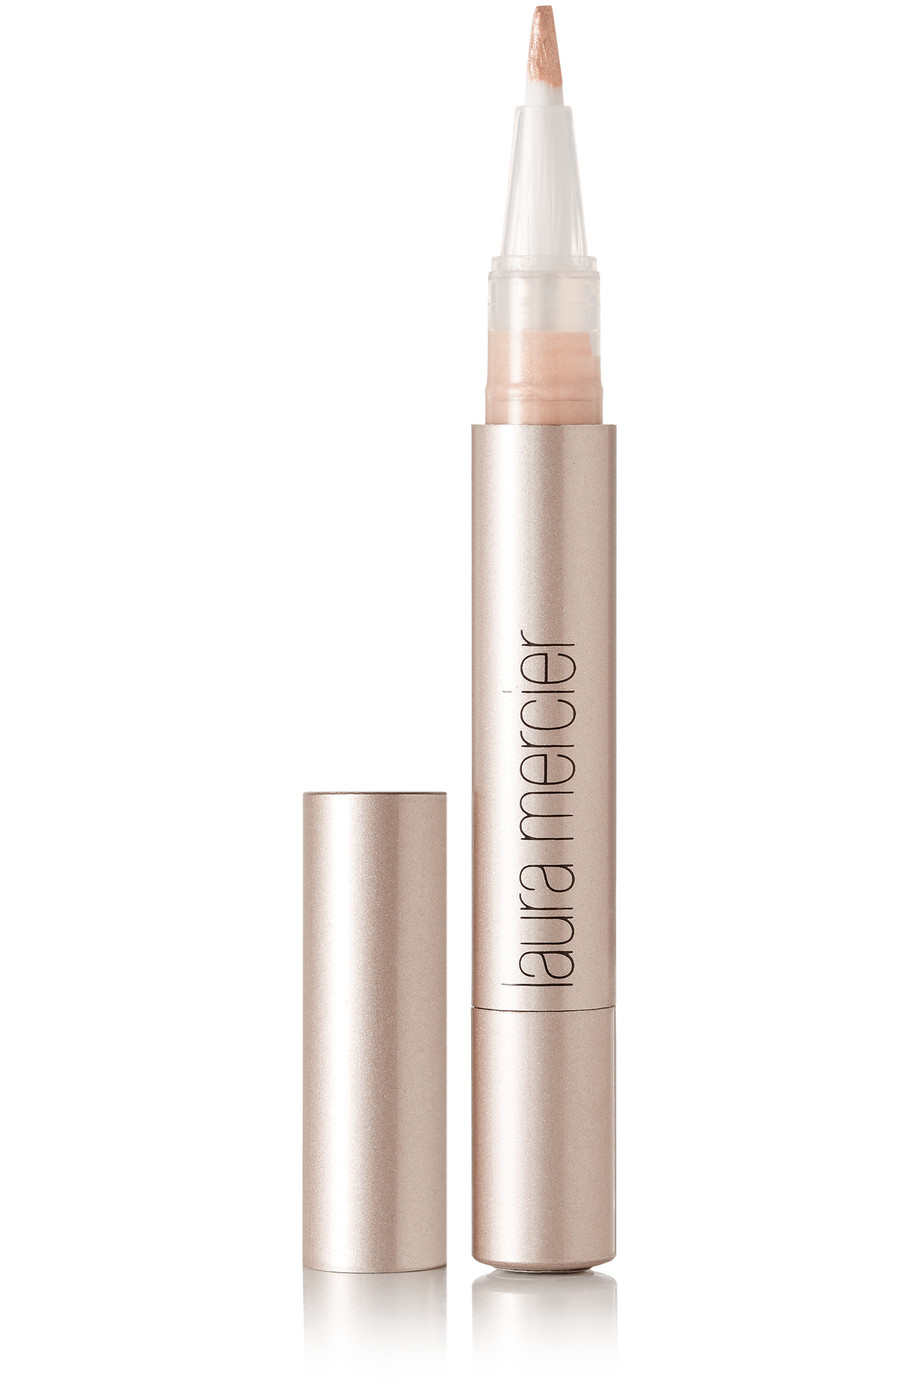 Laura Mercier Secret Brightener Pen - No. 2